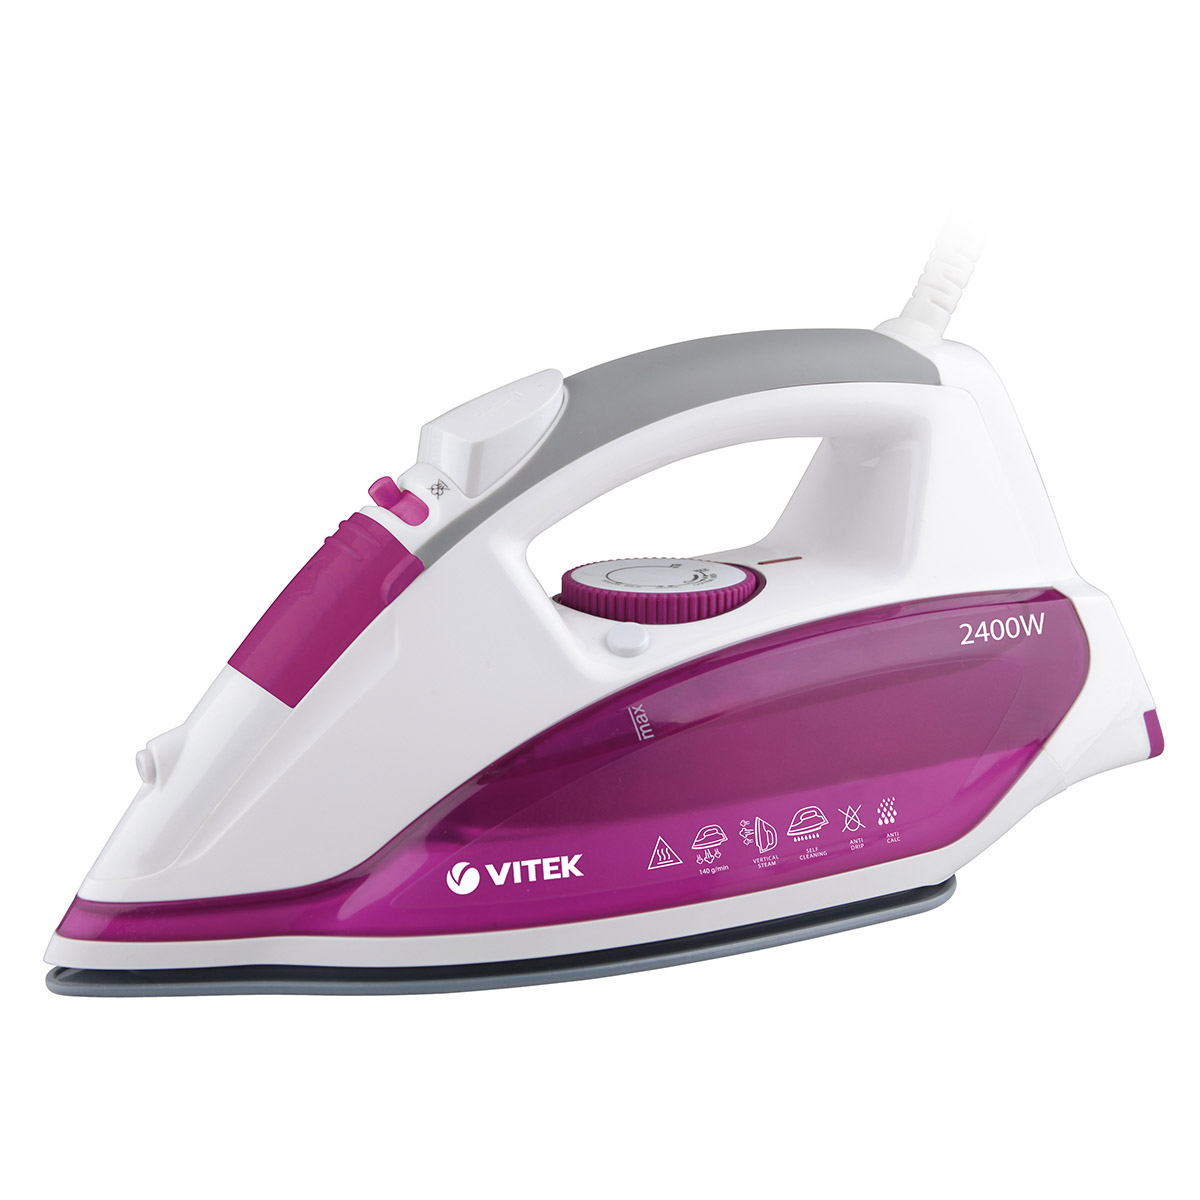 Steam iron VITEK VT-1262(PK) iron vitek vt 1215 iron steam generator iron for ironing irons steam iron electriciron